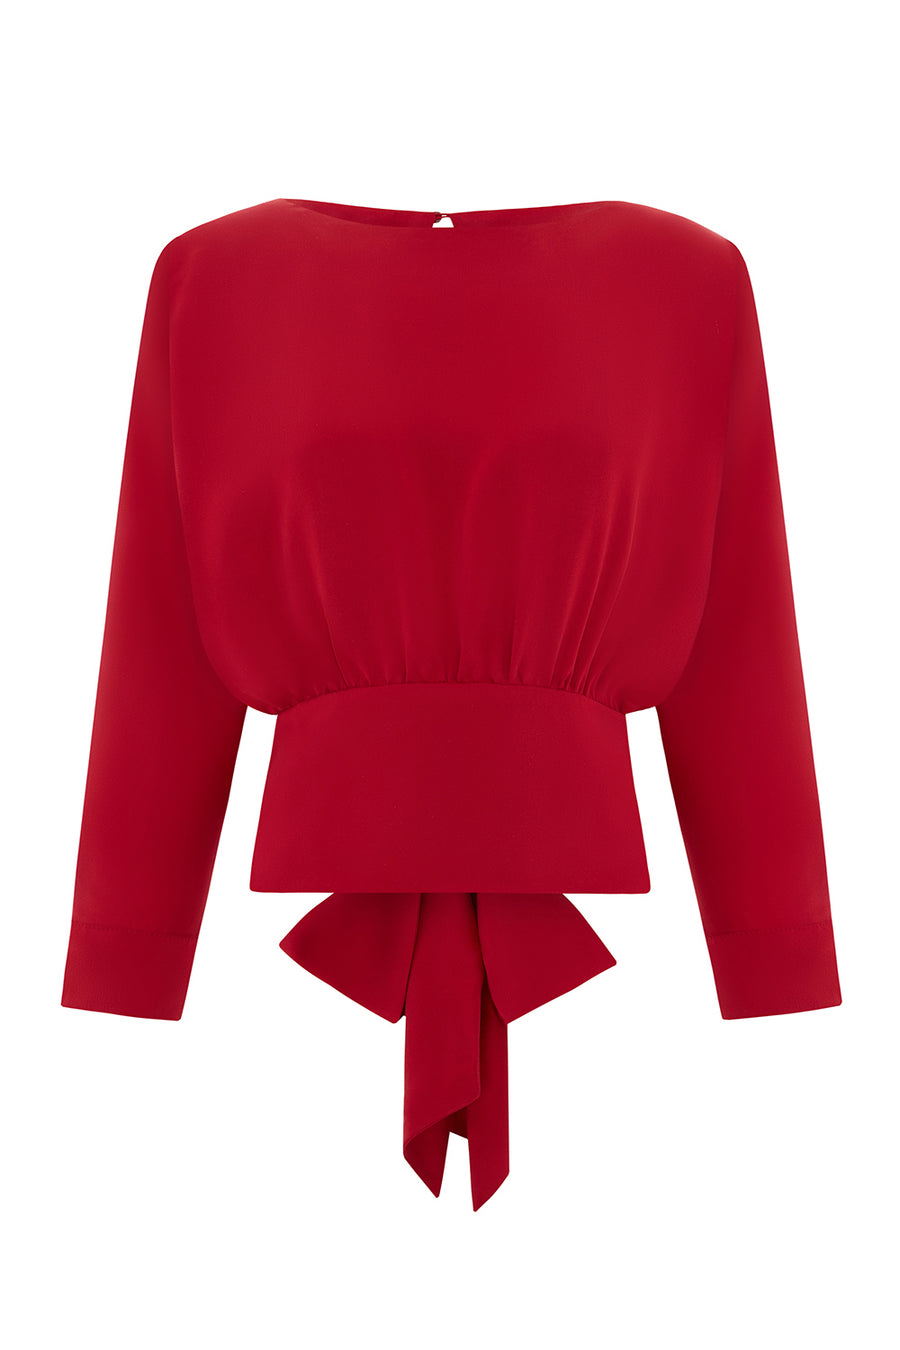 The Aerial Top | Vamp Red (4684639797329)